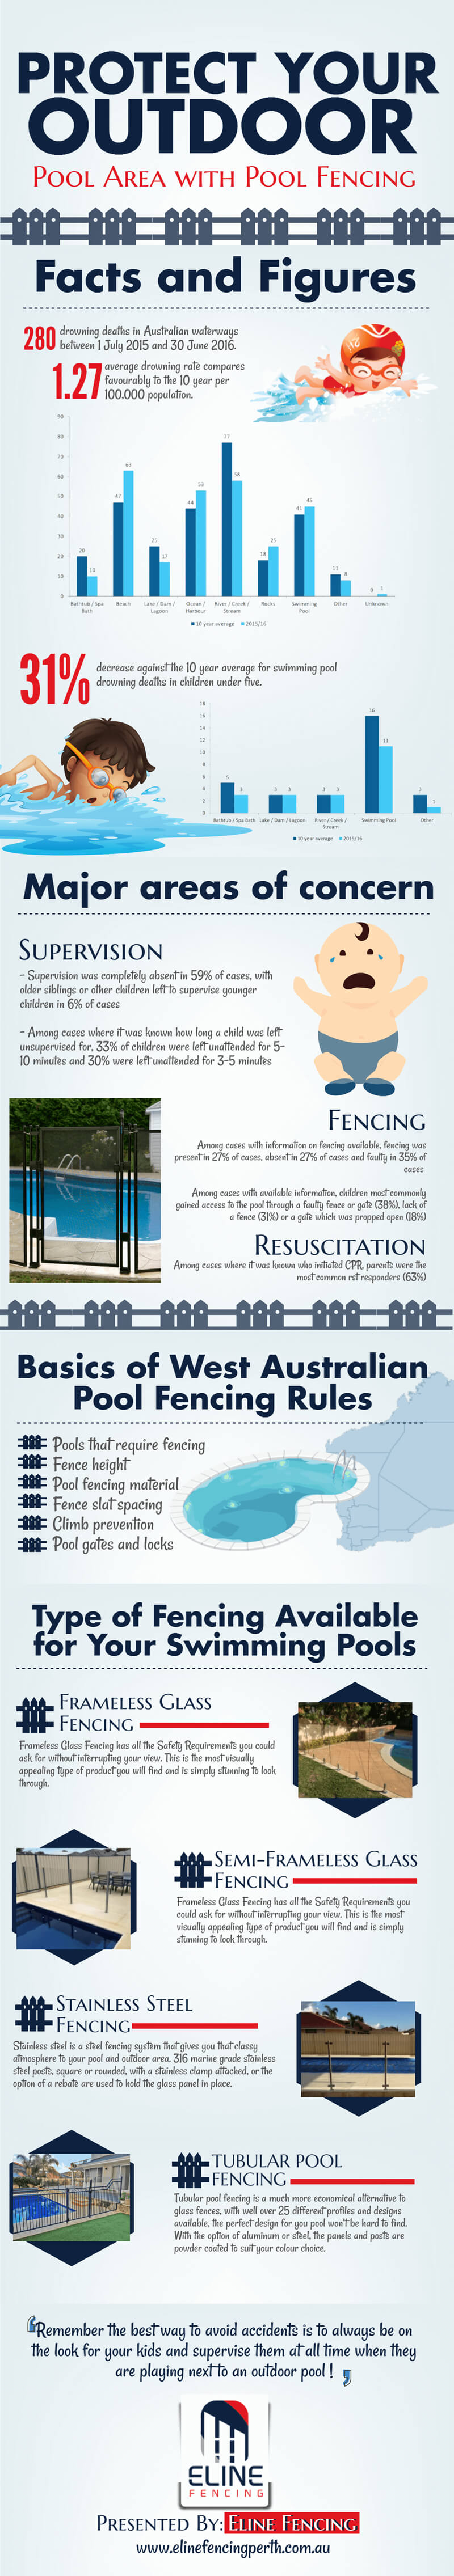 Protect your Outdoor Pool Area with Pool Fencing